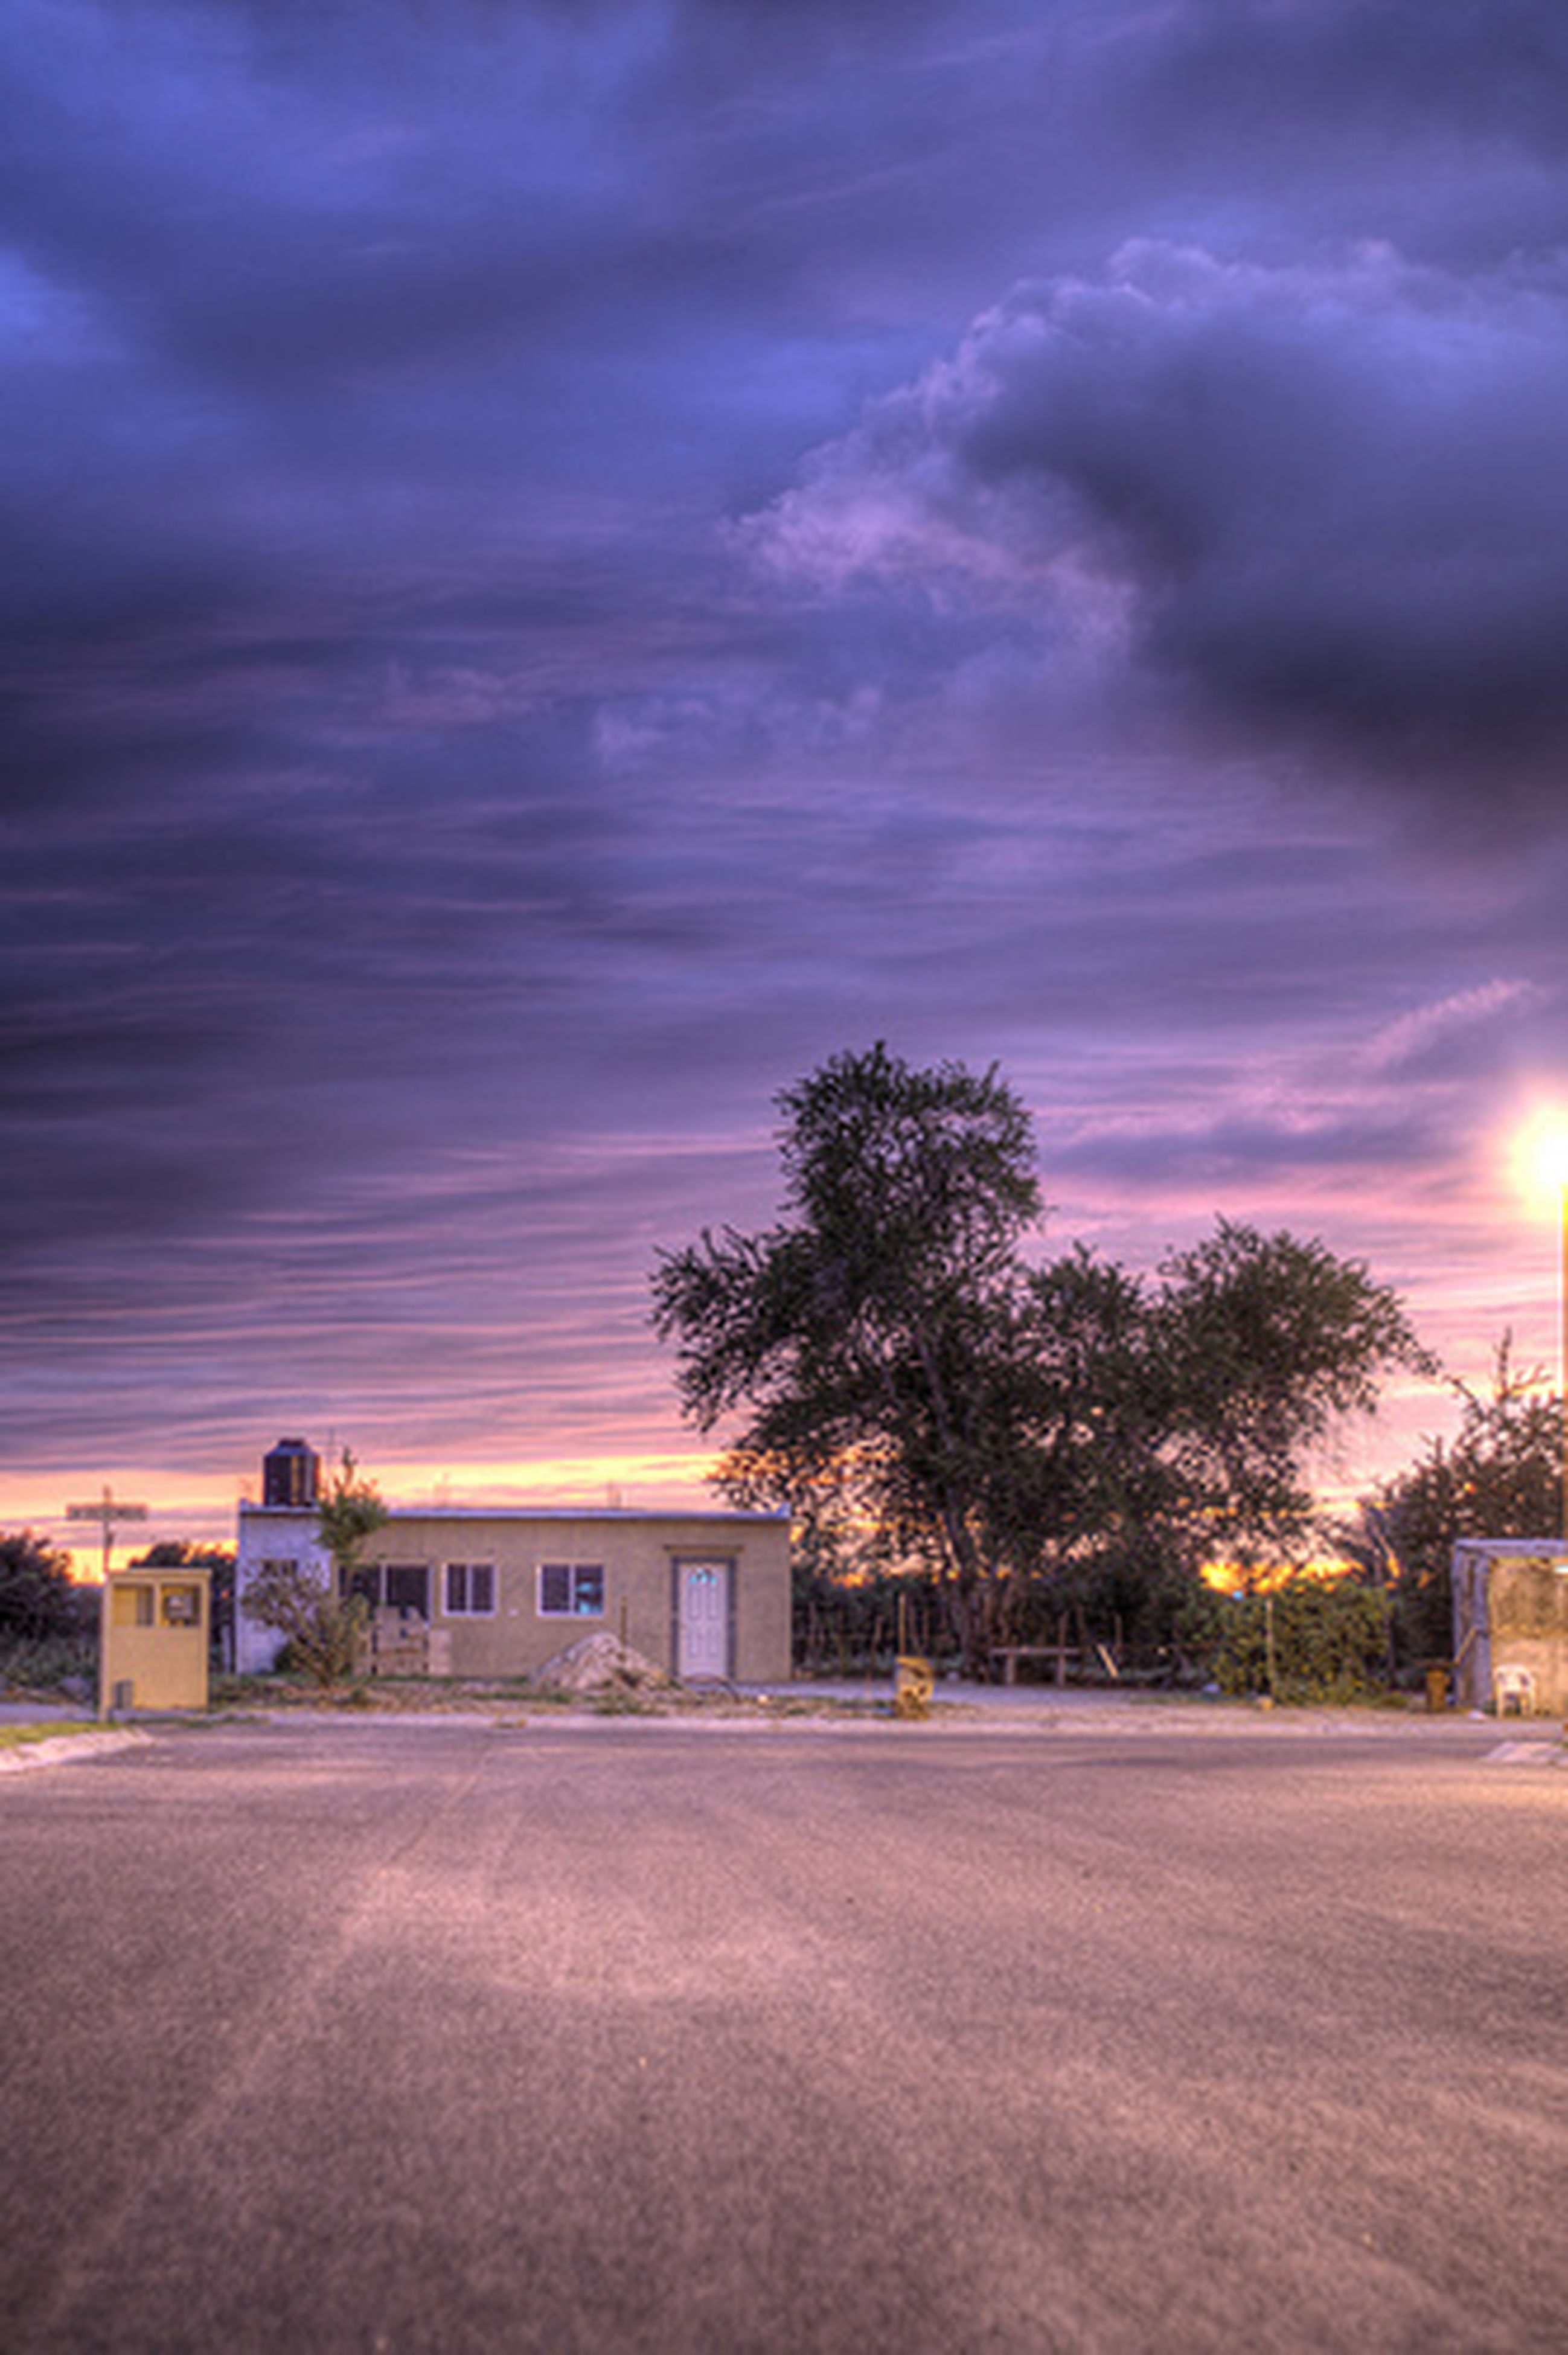 sky, cloud - sky, tree, building exterior, sunset, architecture, cloudy, built structure, road, the way forward, weather, house, street, dusk, transportation, cloud, nature, tranquility, empty, outdoors